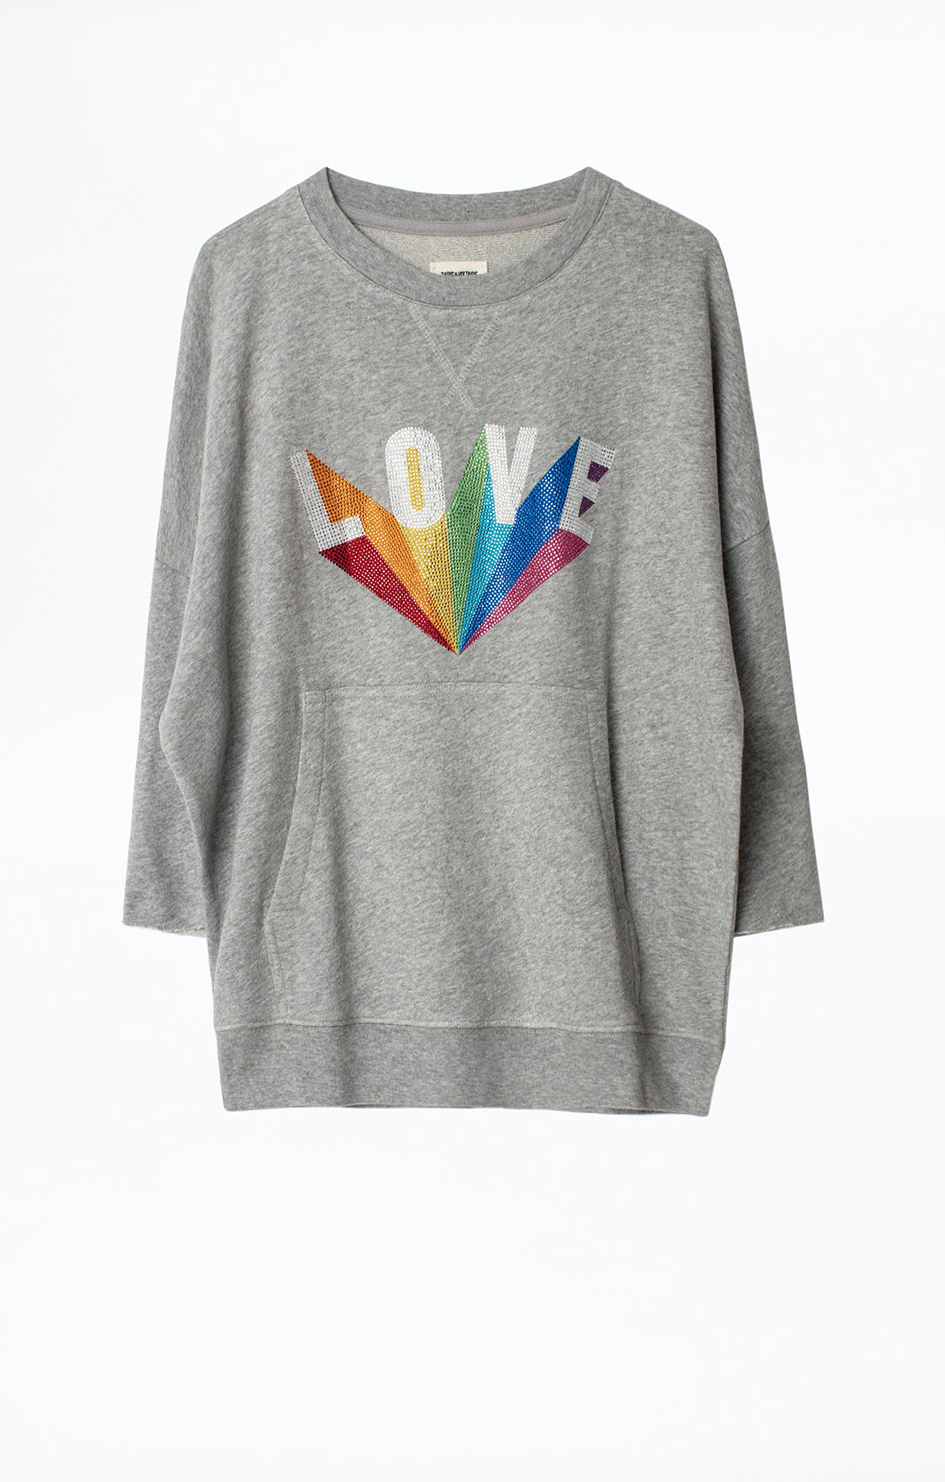 Kaly Lobe Rainbow Strass Sweatshirt